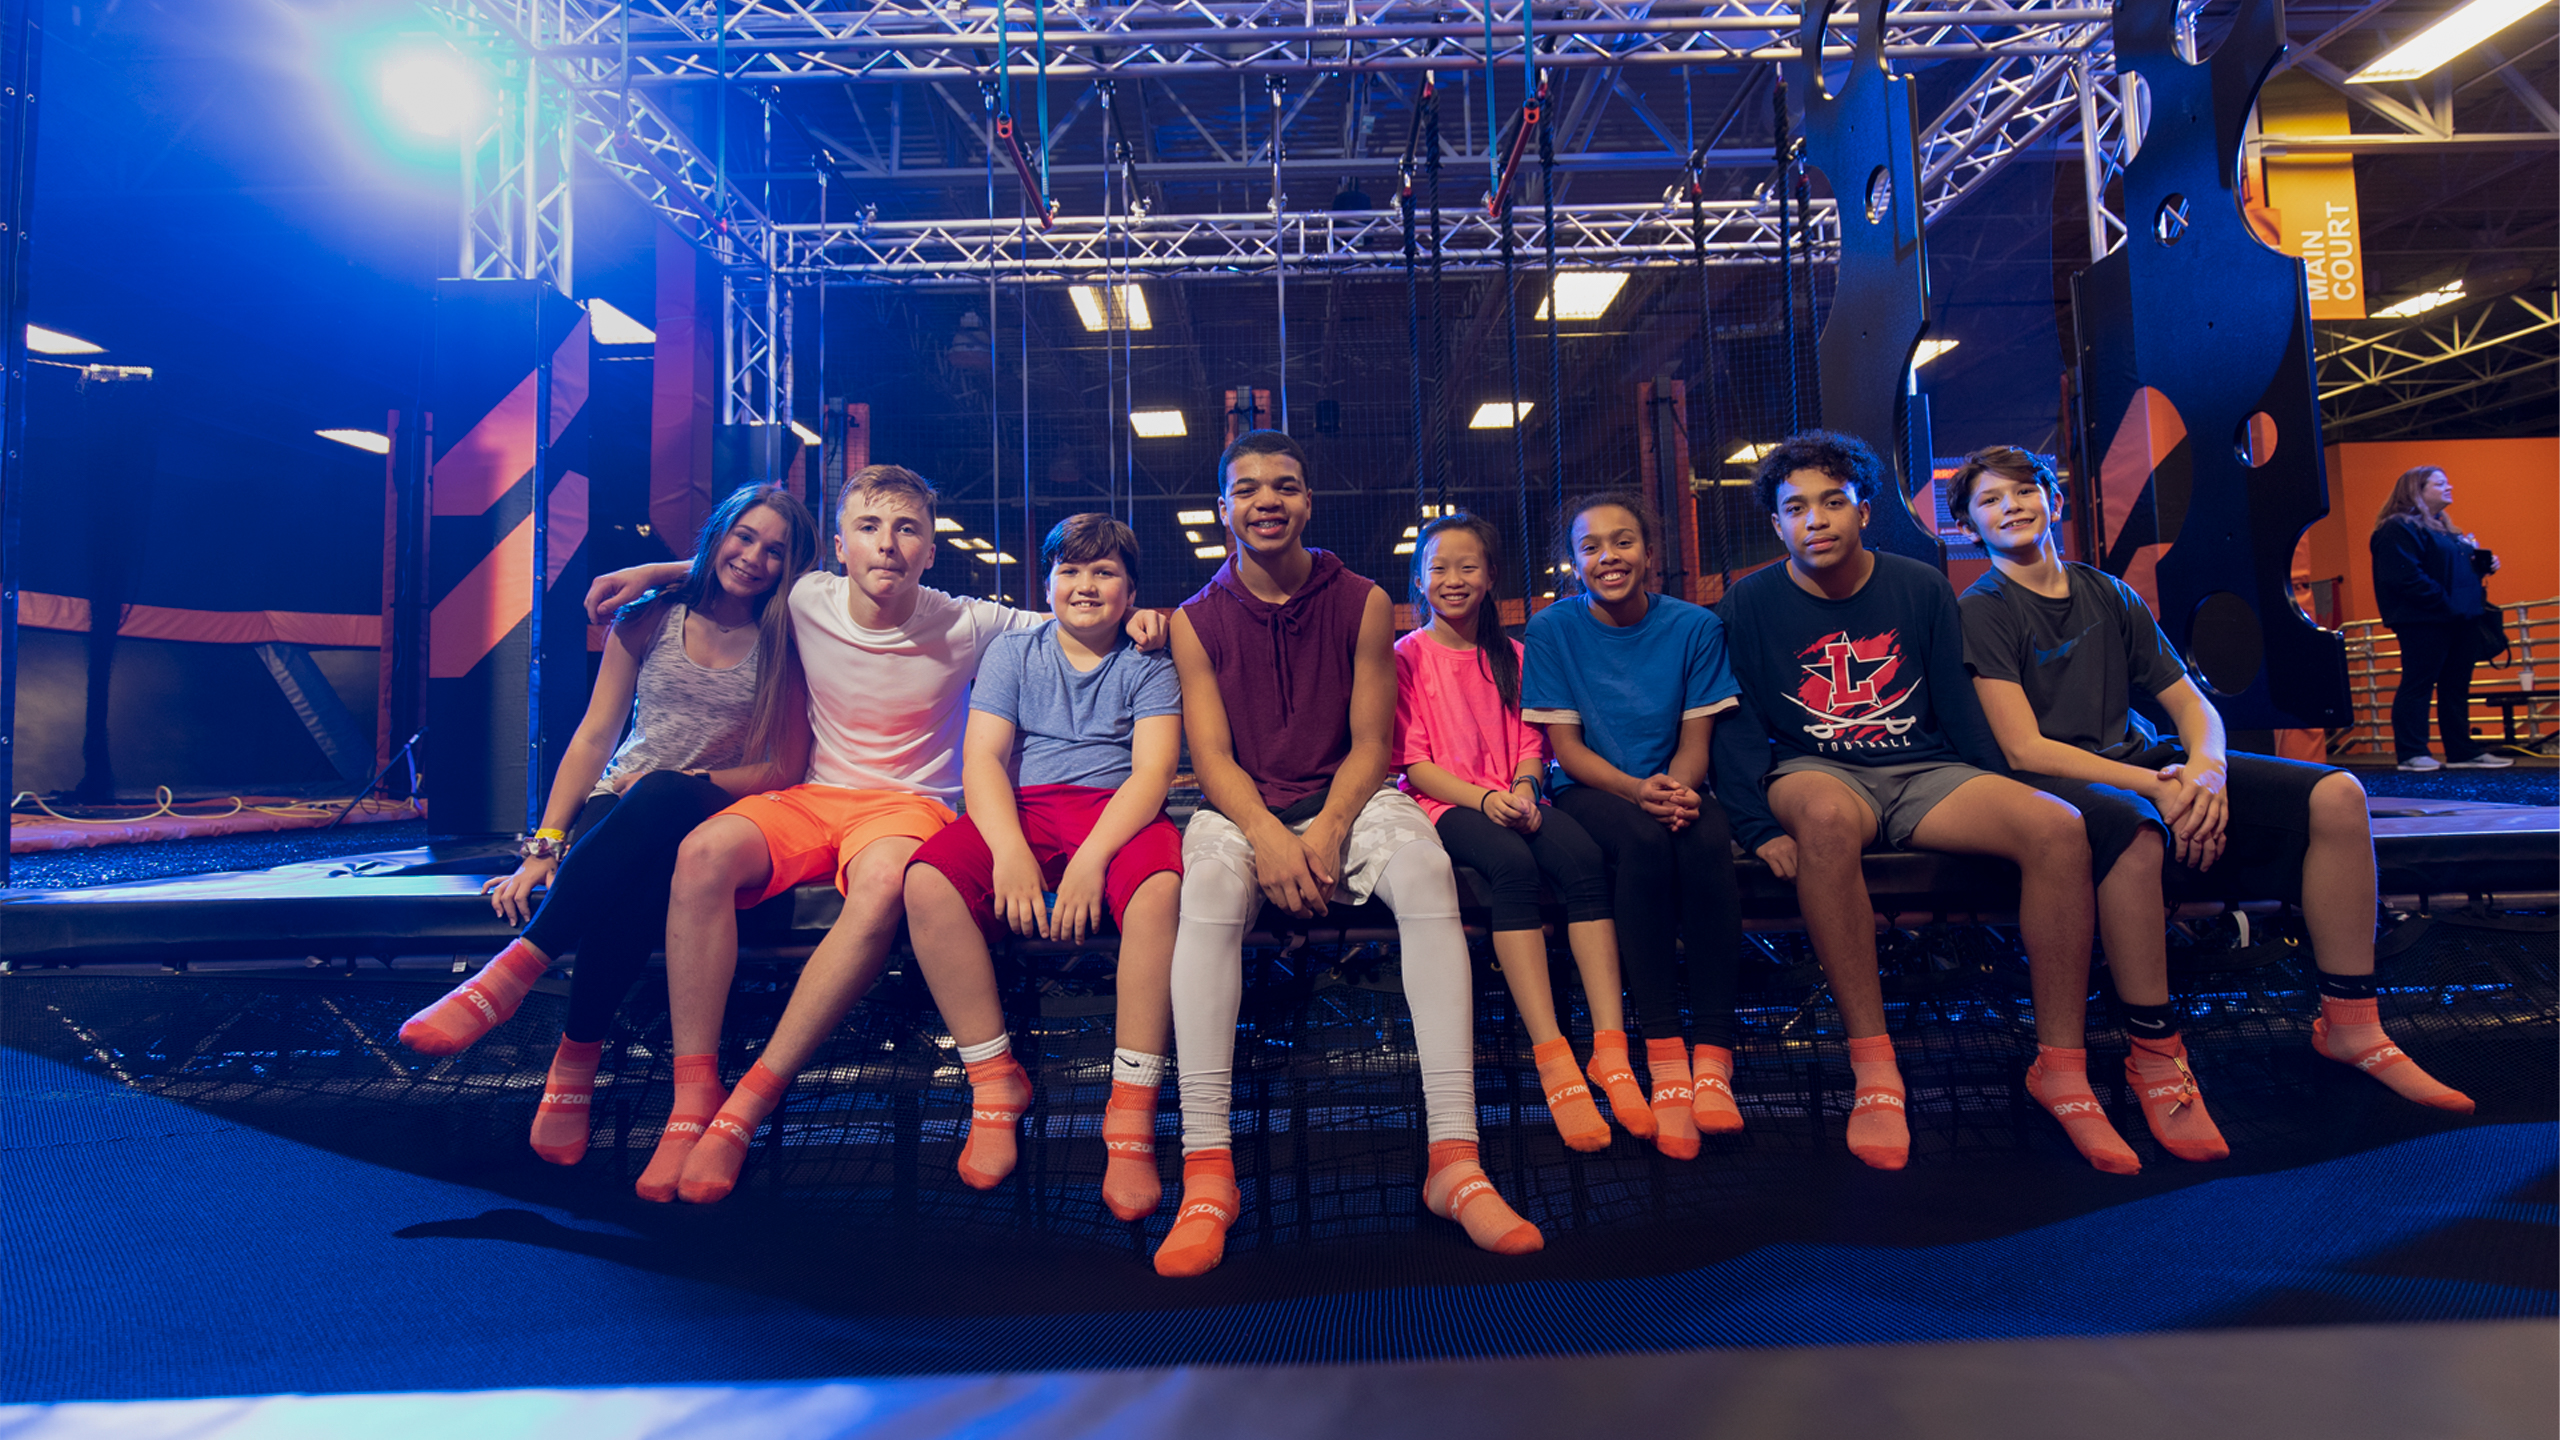 Get Creative and Become a Social Media Sensation at Sky Zone